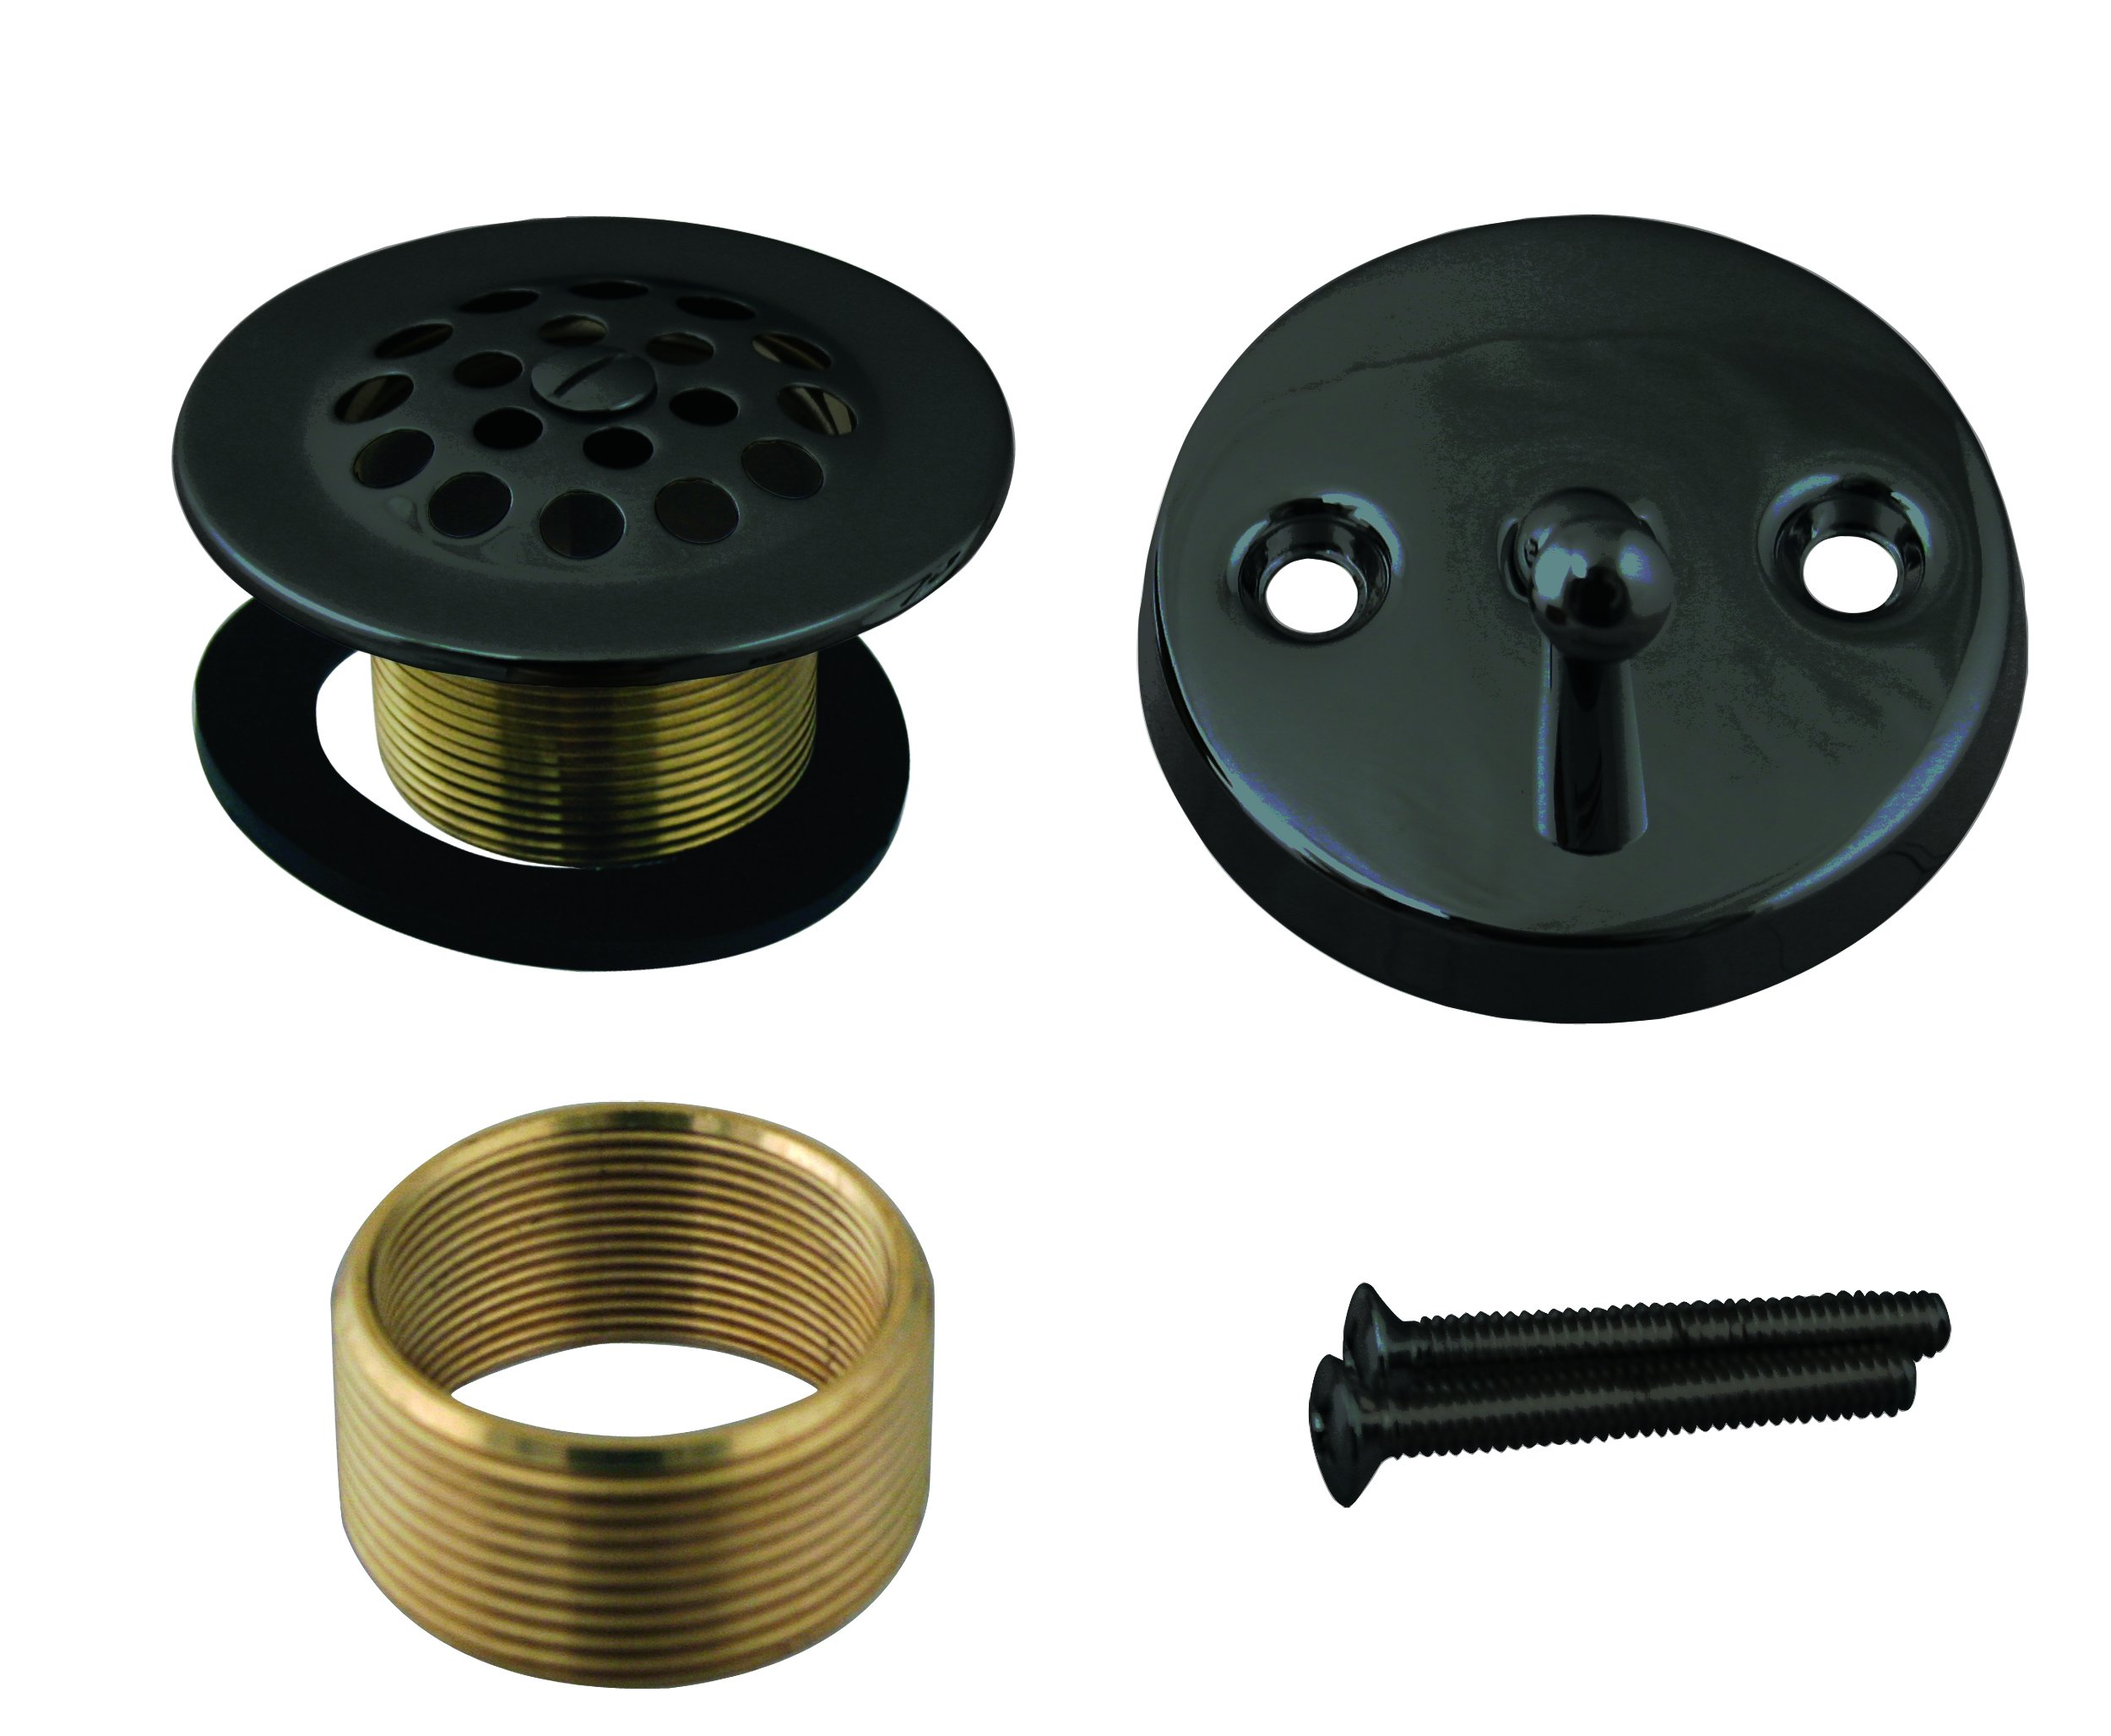 Westbrass Beehive Grid Universal Tub Trim with Trip Lever Faceplate, Matte Black, D92K-62